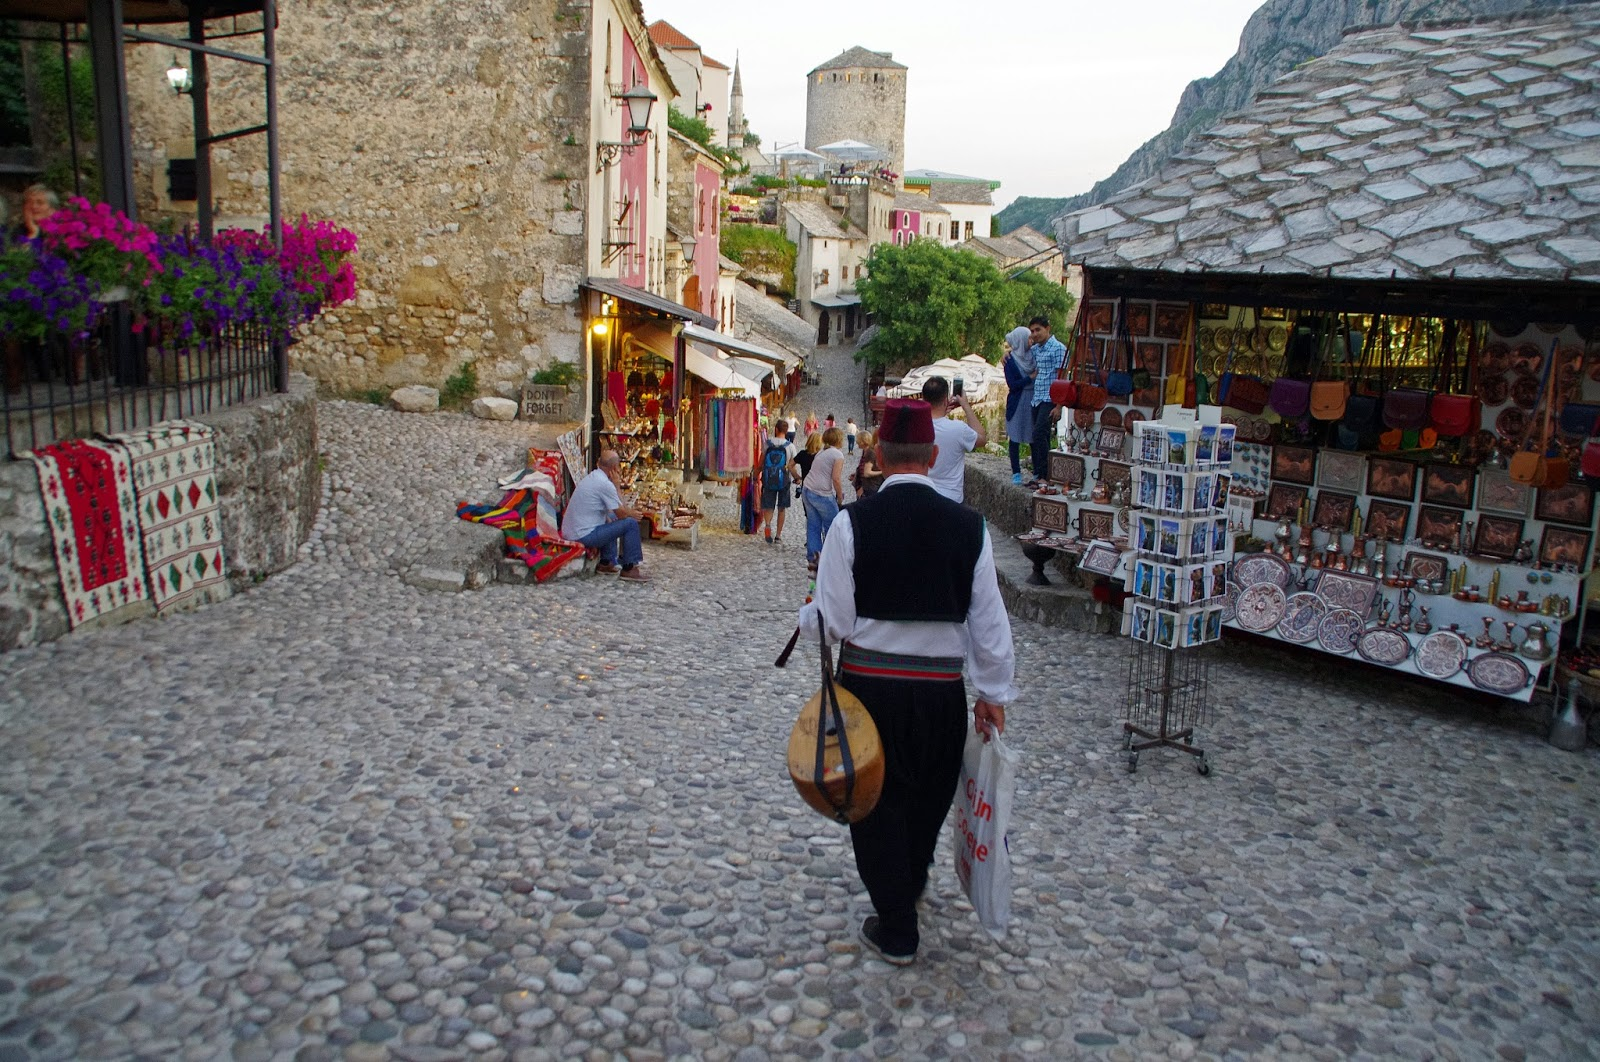 Cobblestoned Old Town Mostar